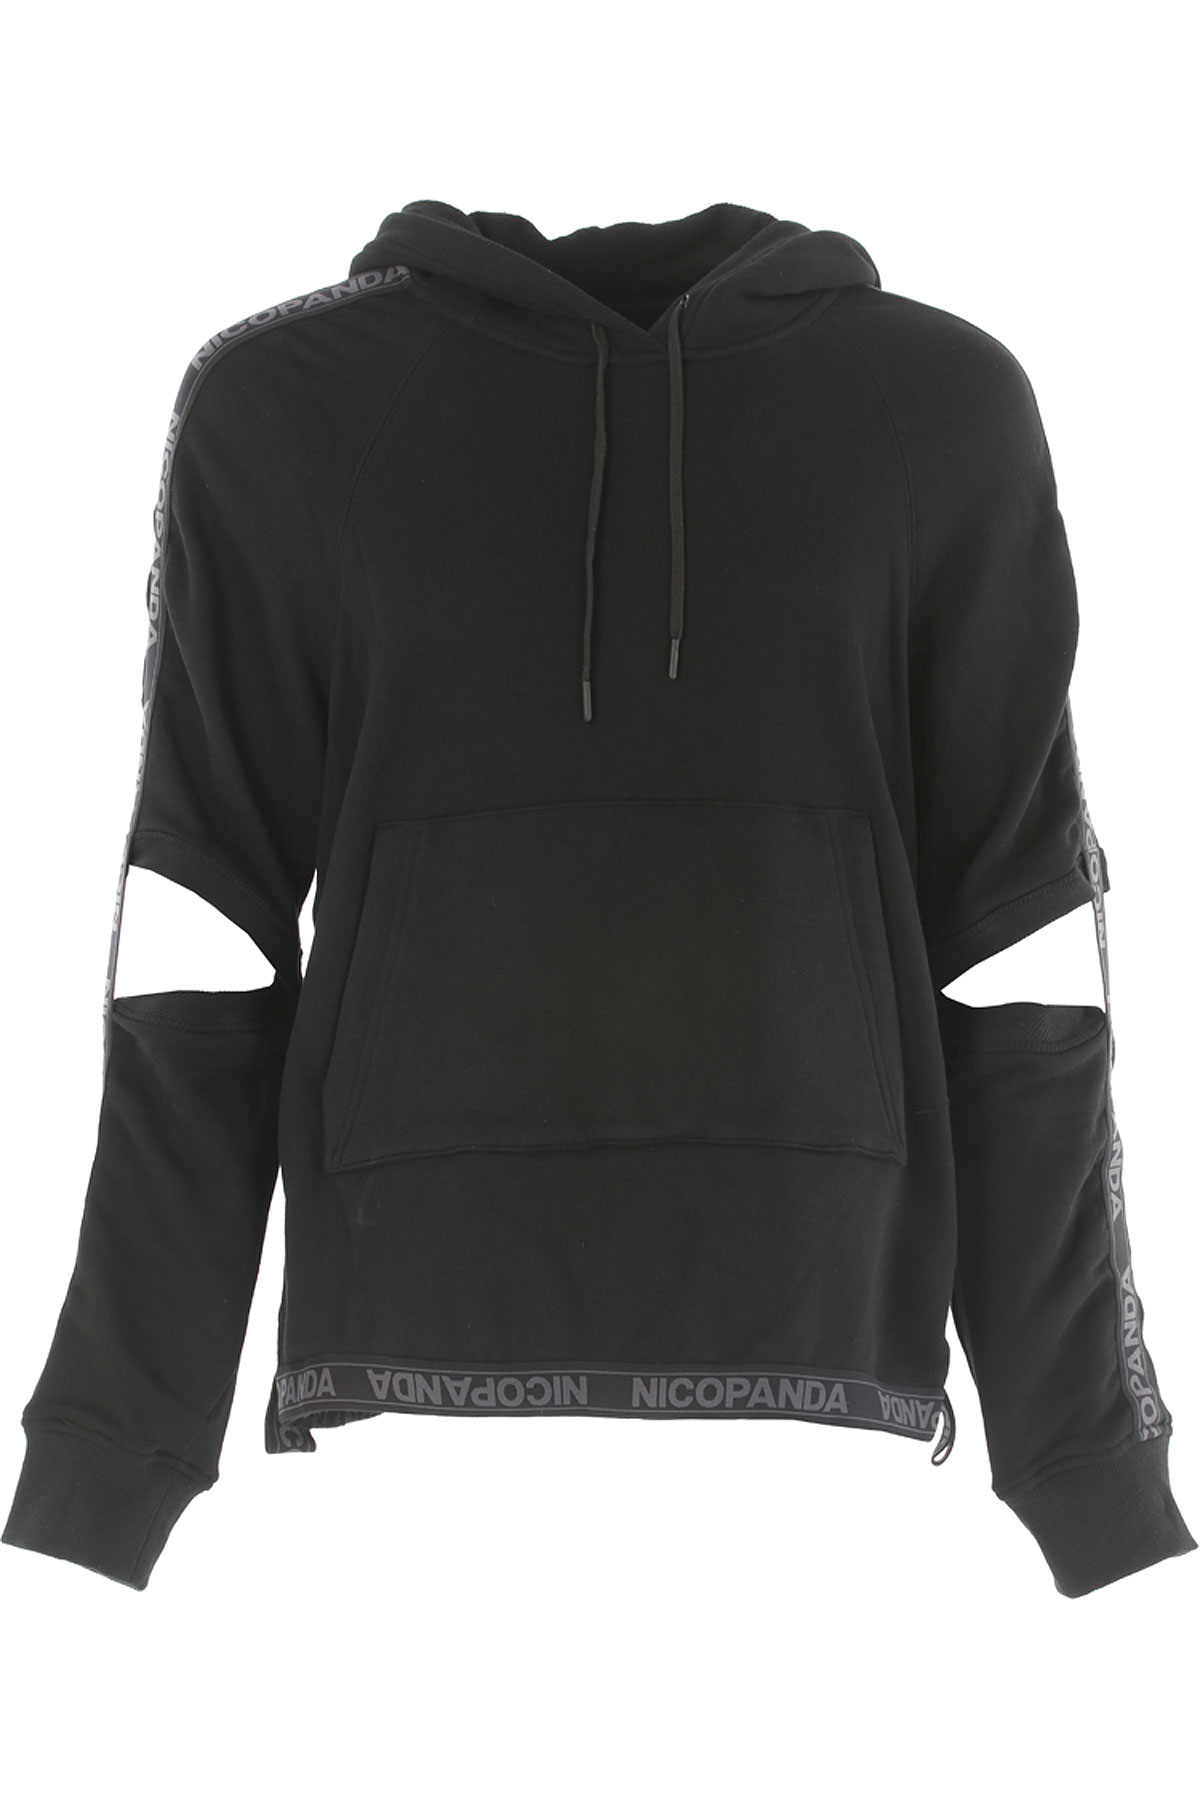 Image of Nicopanda Sweater for Men Jumper On Sale, Black, Cotton, 2017, 3 - Uk/Usa L - Ita 50 4 - Uk/Usa XL - Ita 52